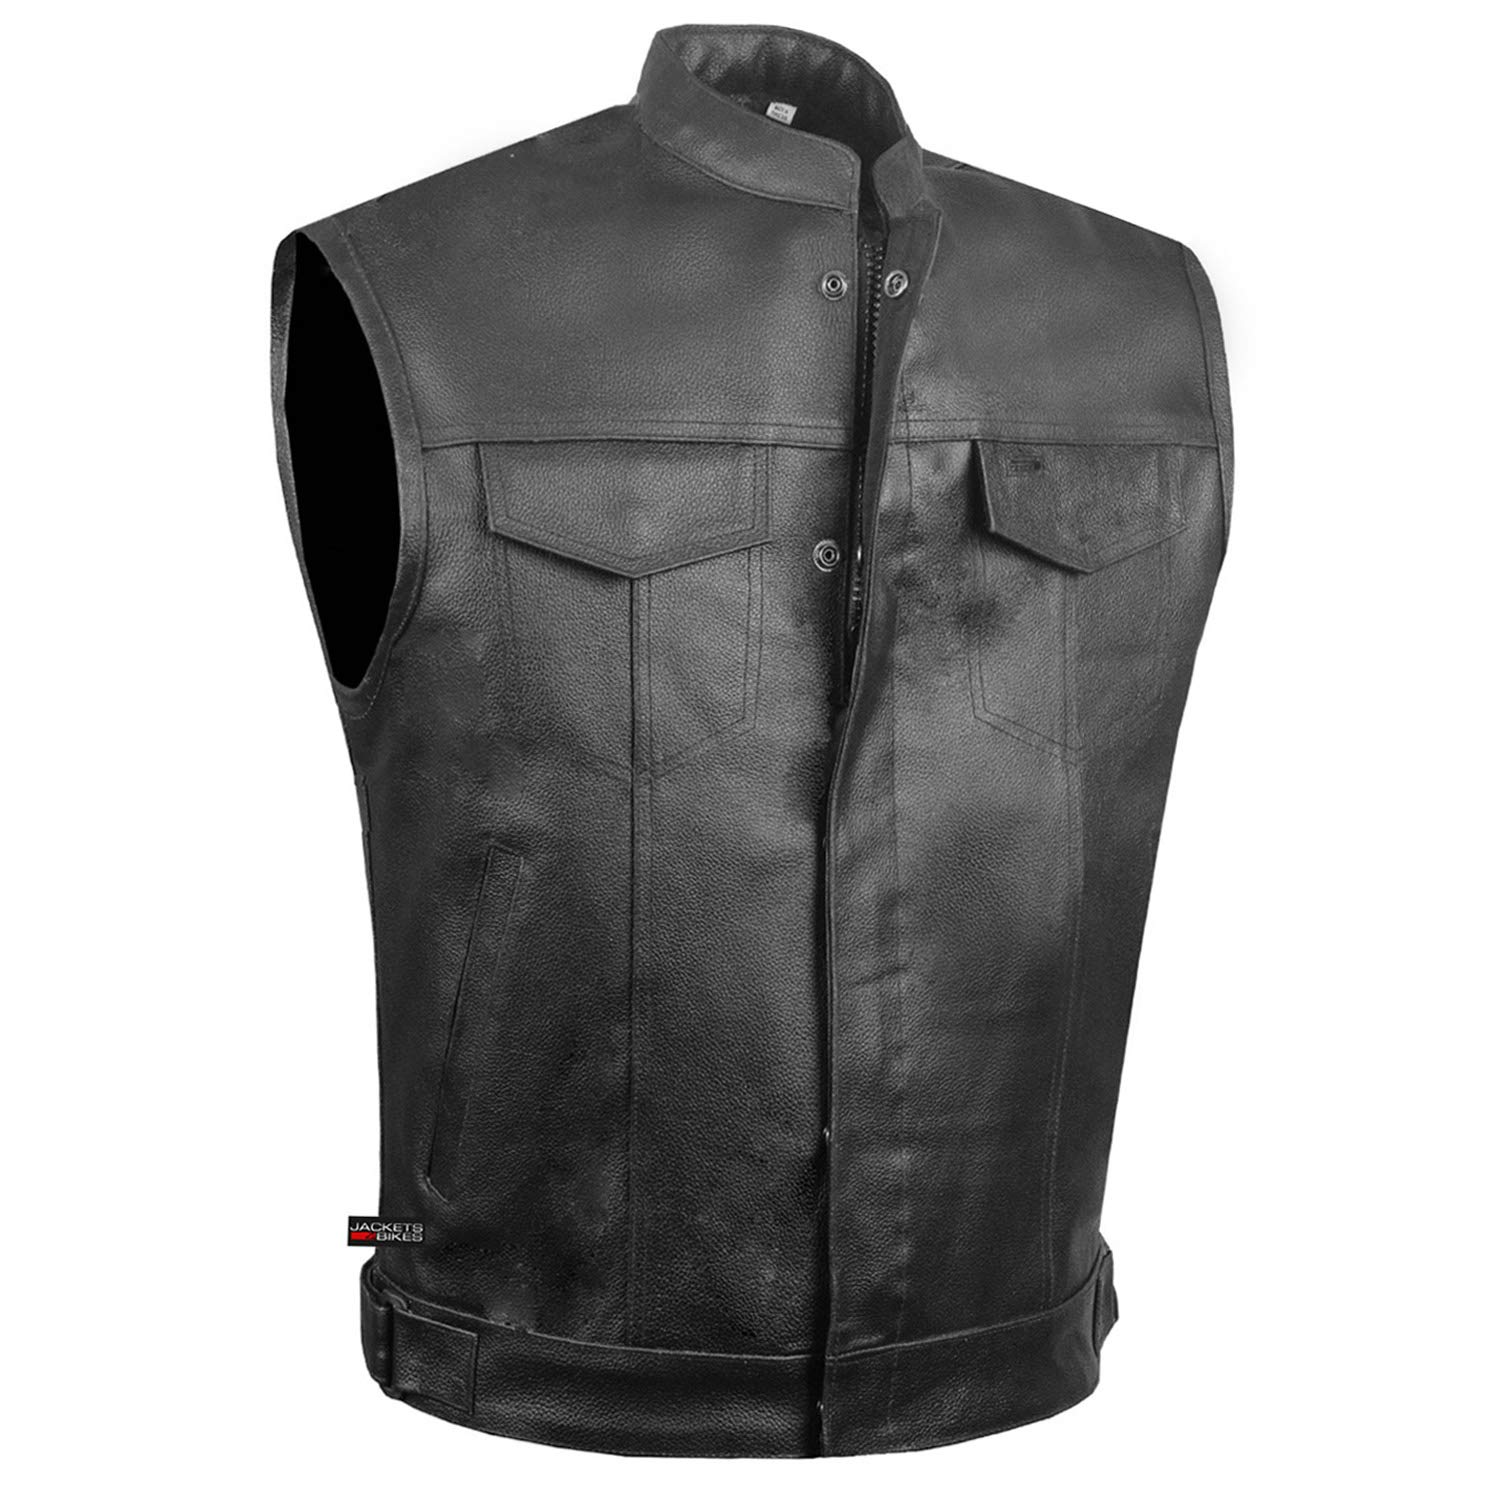 SOA Men's Leather Motorcycle Concealed Gun Pockets Biker Club Vest w/Armor XL by Jackets 4 Bikes